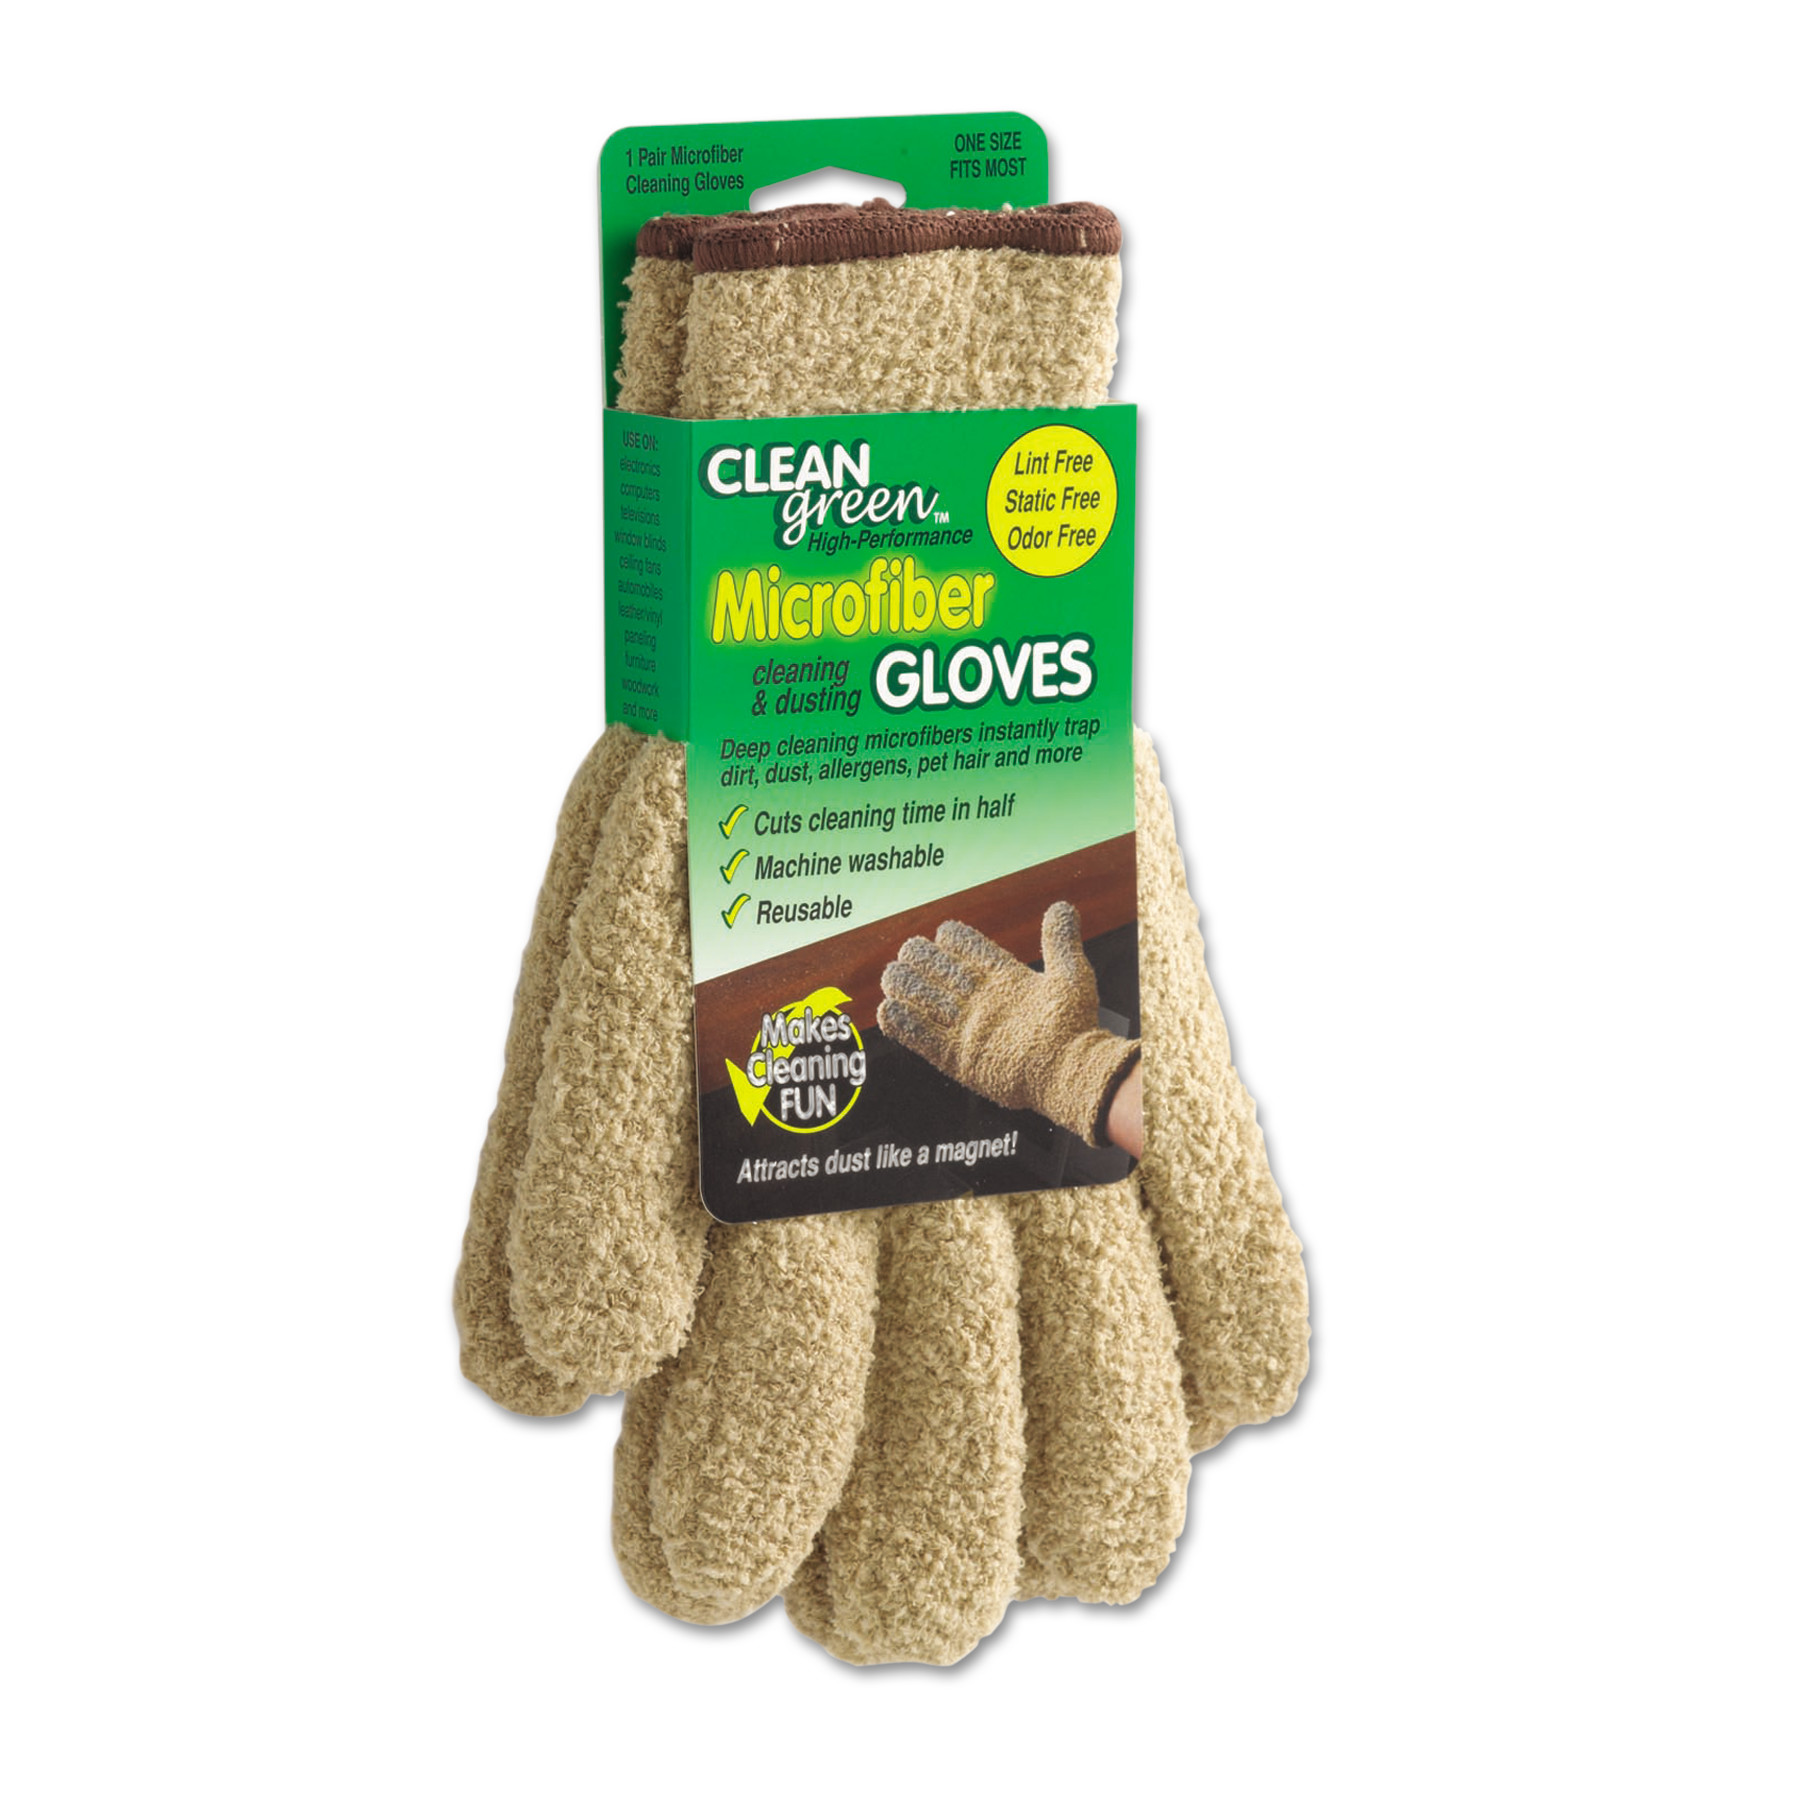 Master Caster CleanGreen Microfiber Cleaning and Dusting Gloves, Pair